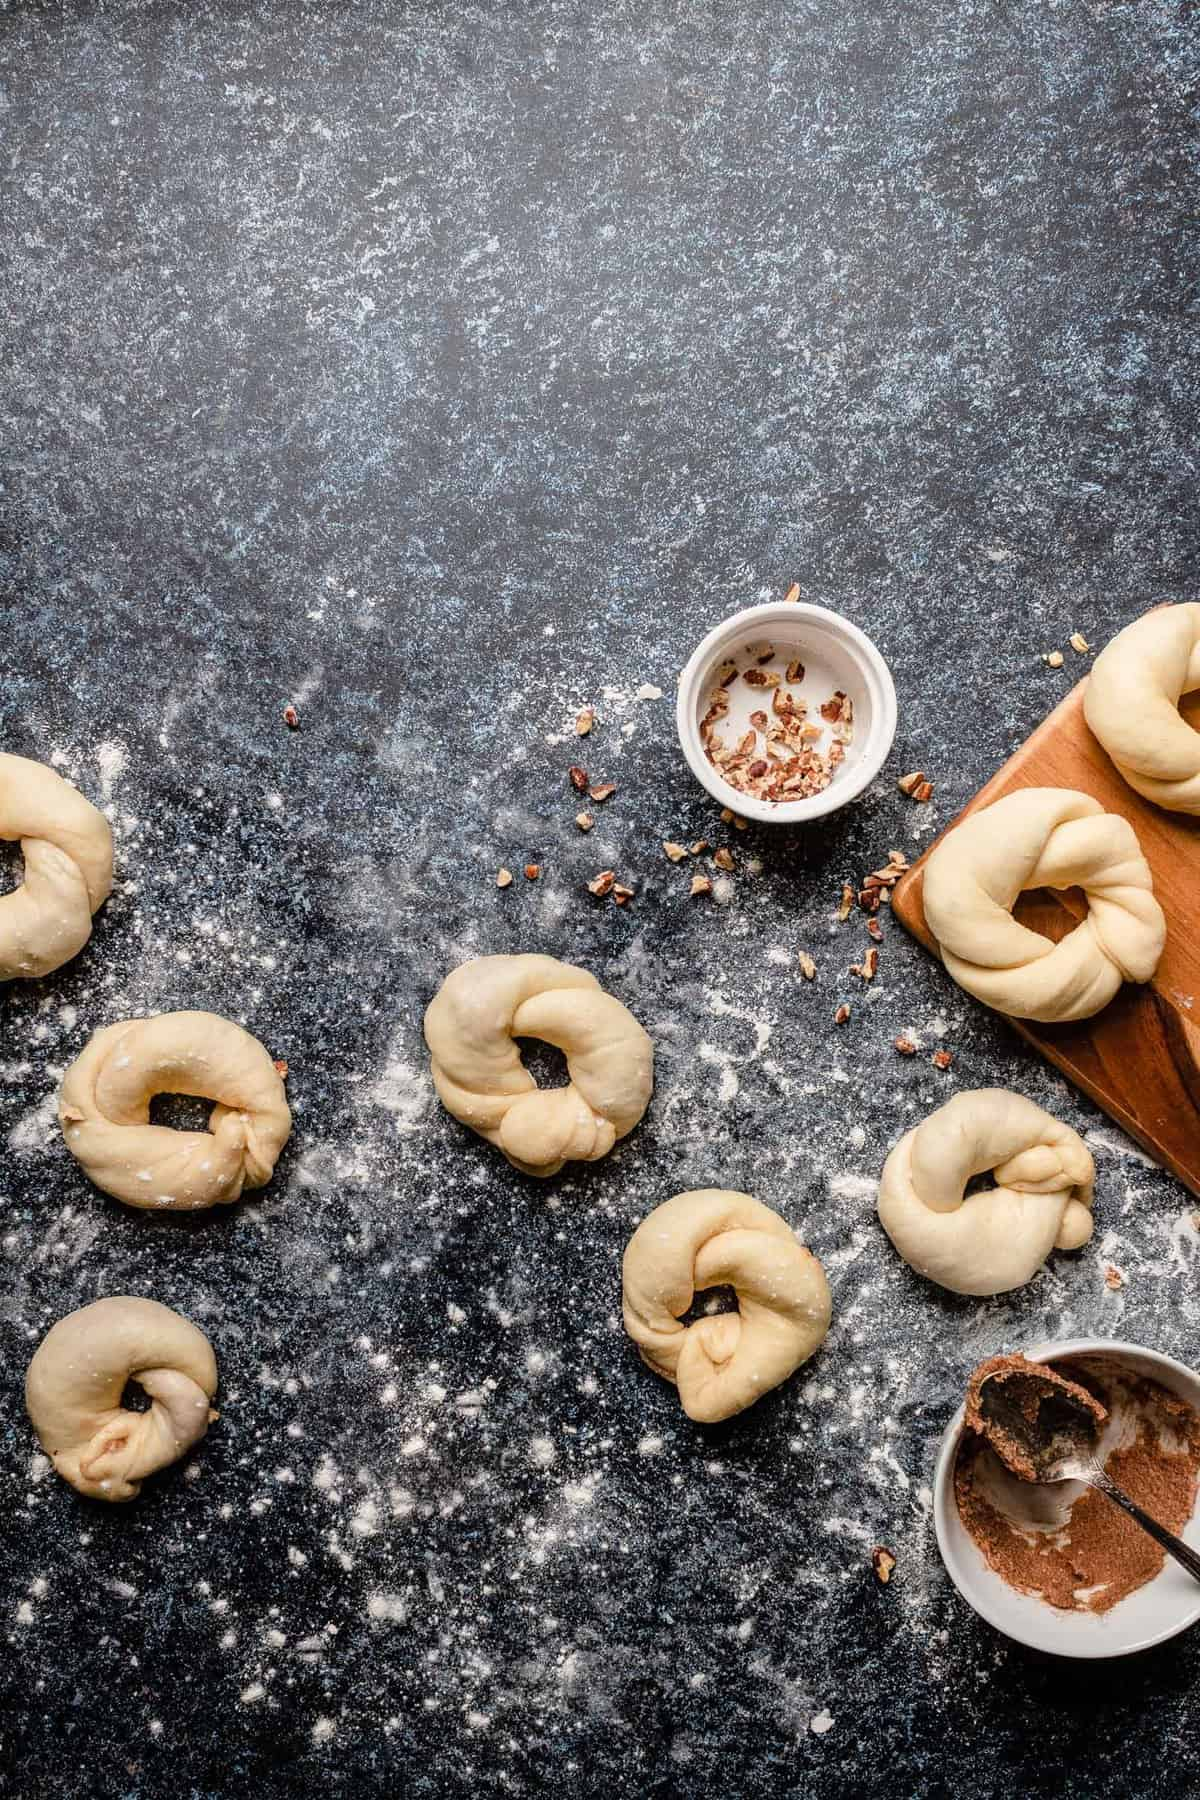 sweet morning cinnamon coffee rings pastry recipe filled with cinnamon and toasted pecans.